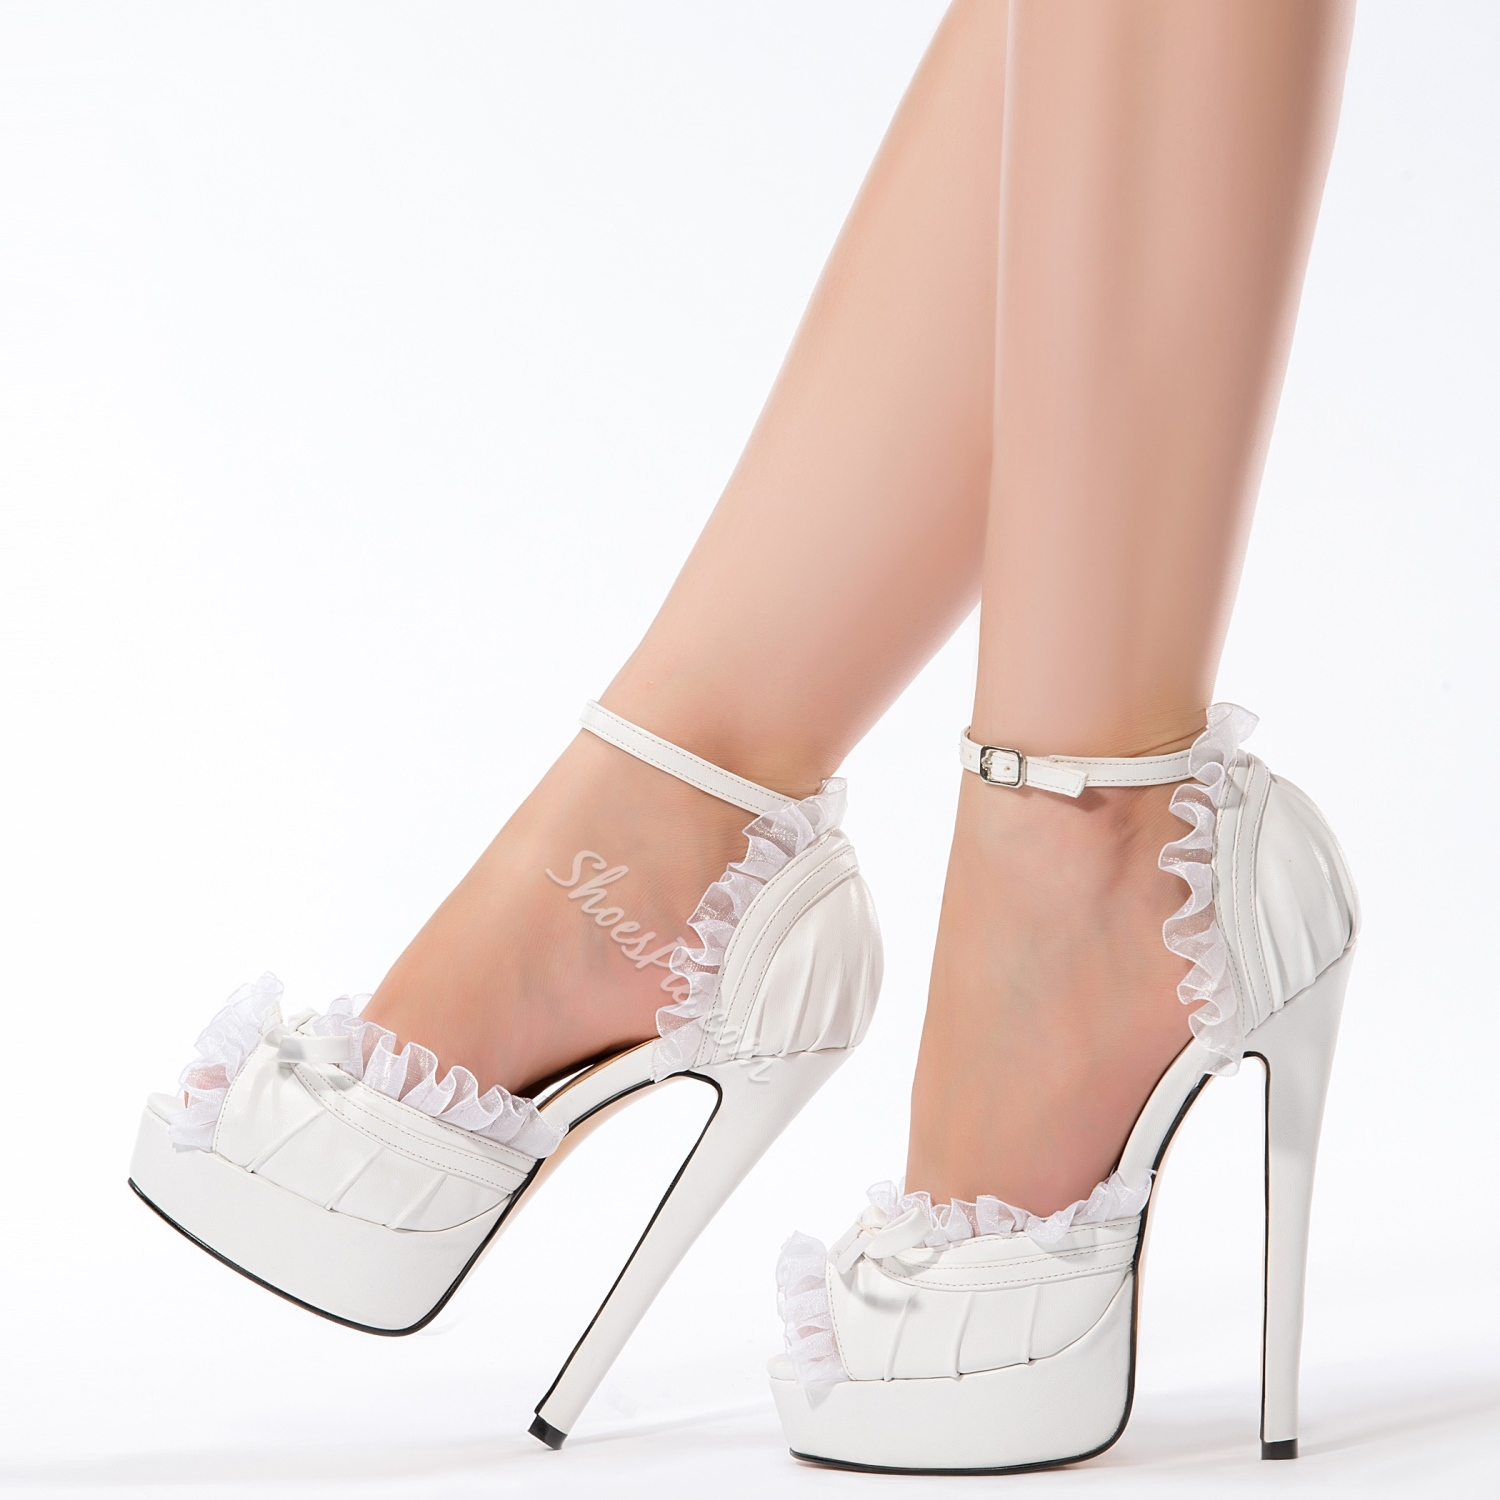 Shoespie Elegant White PU Peep Toe Ankle Strap High Heel Shoes